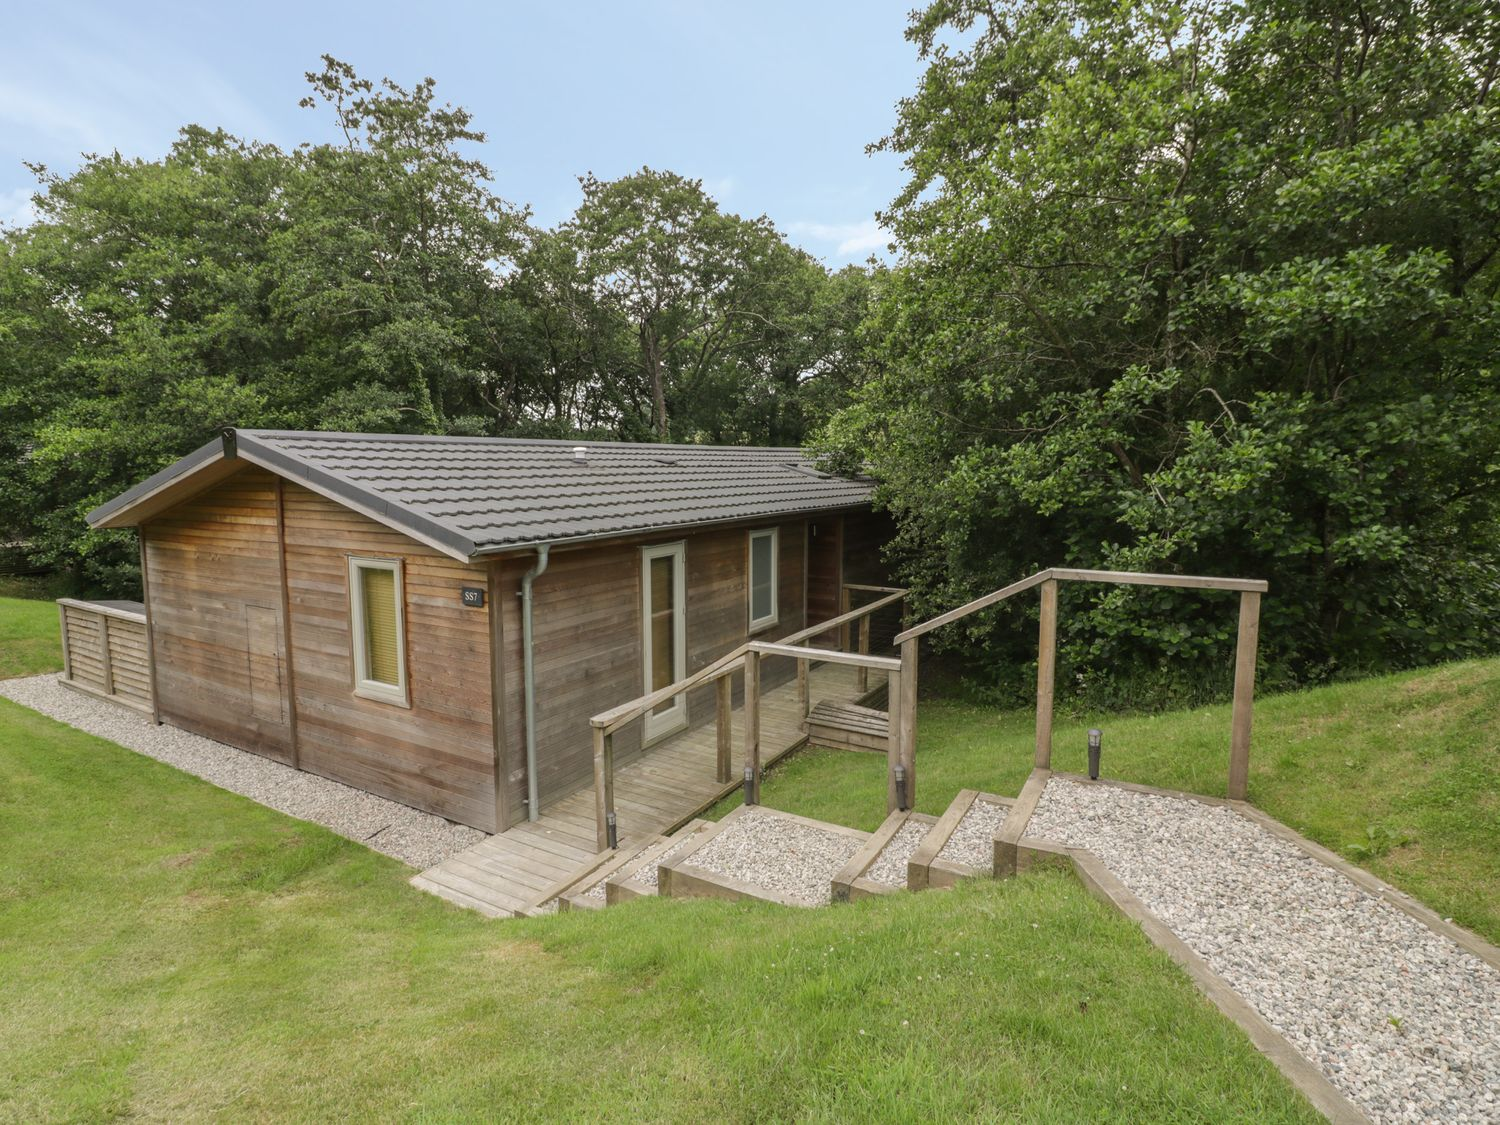 7 Streamside - Cornwall - 991438 - photo 1